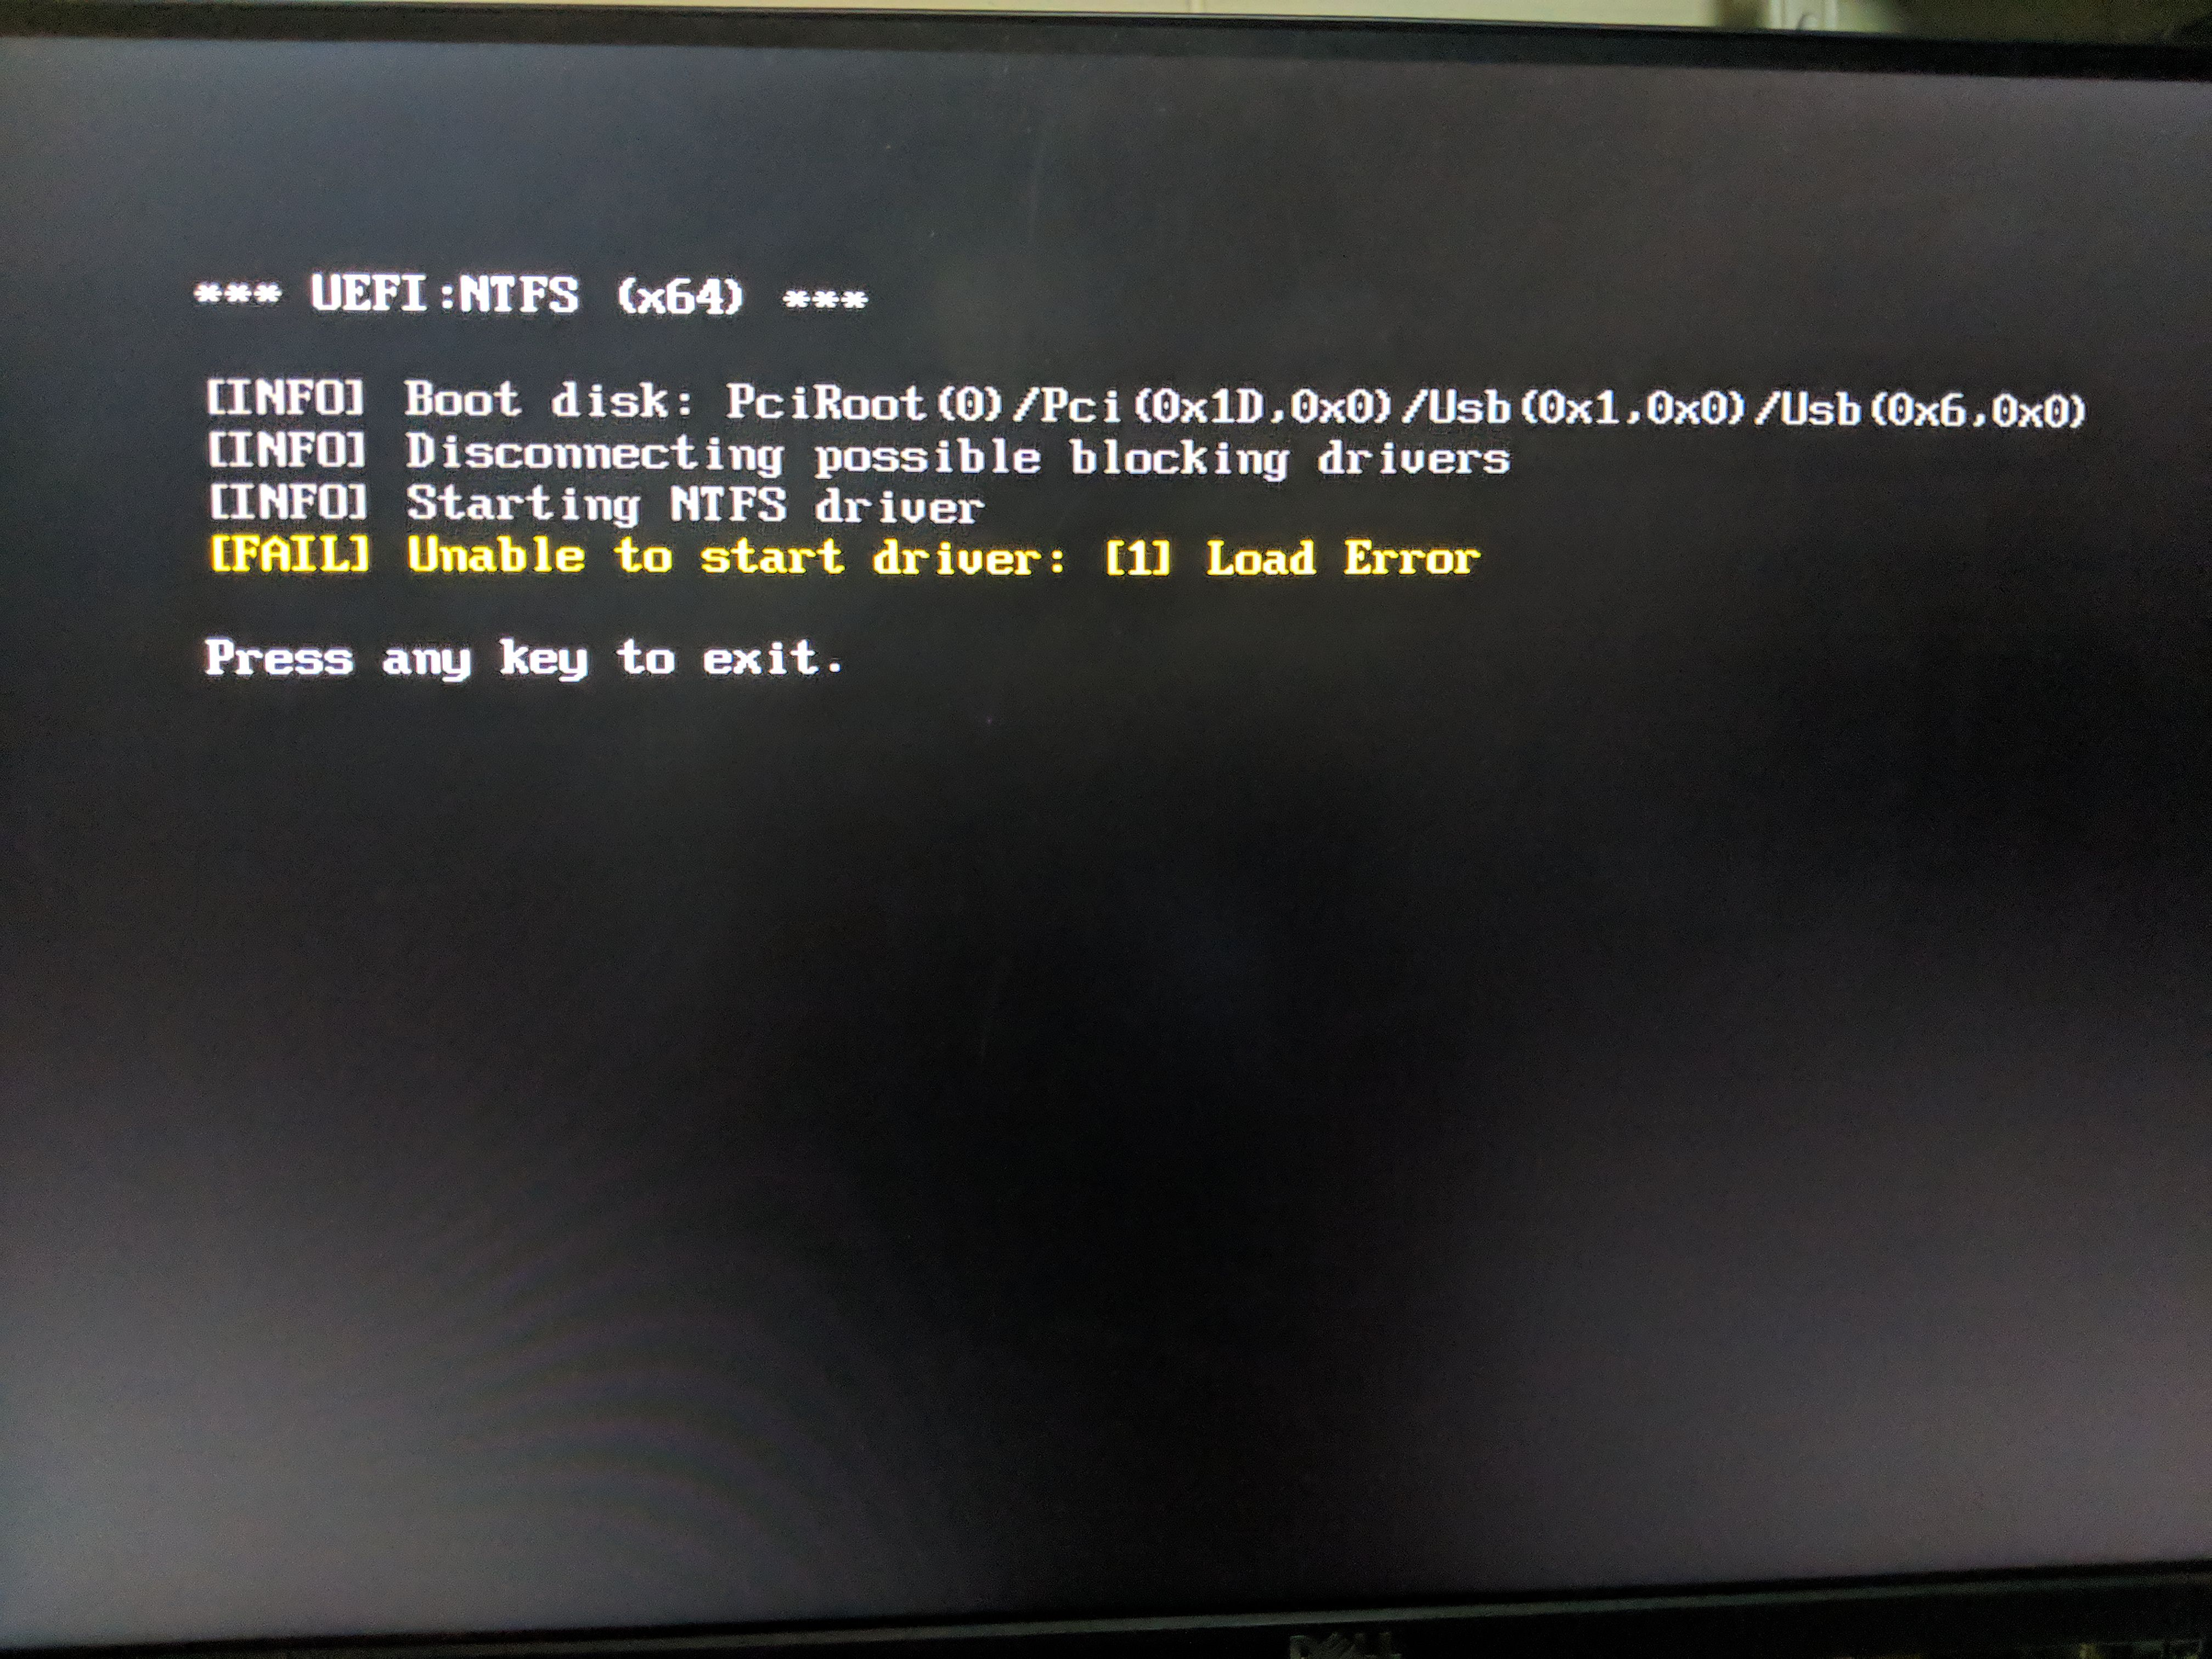 UEFI:NTFS - Unable to start driver: [1] or Could not start NTFS